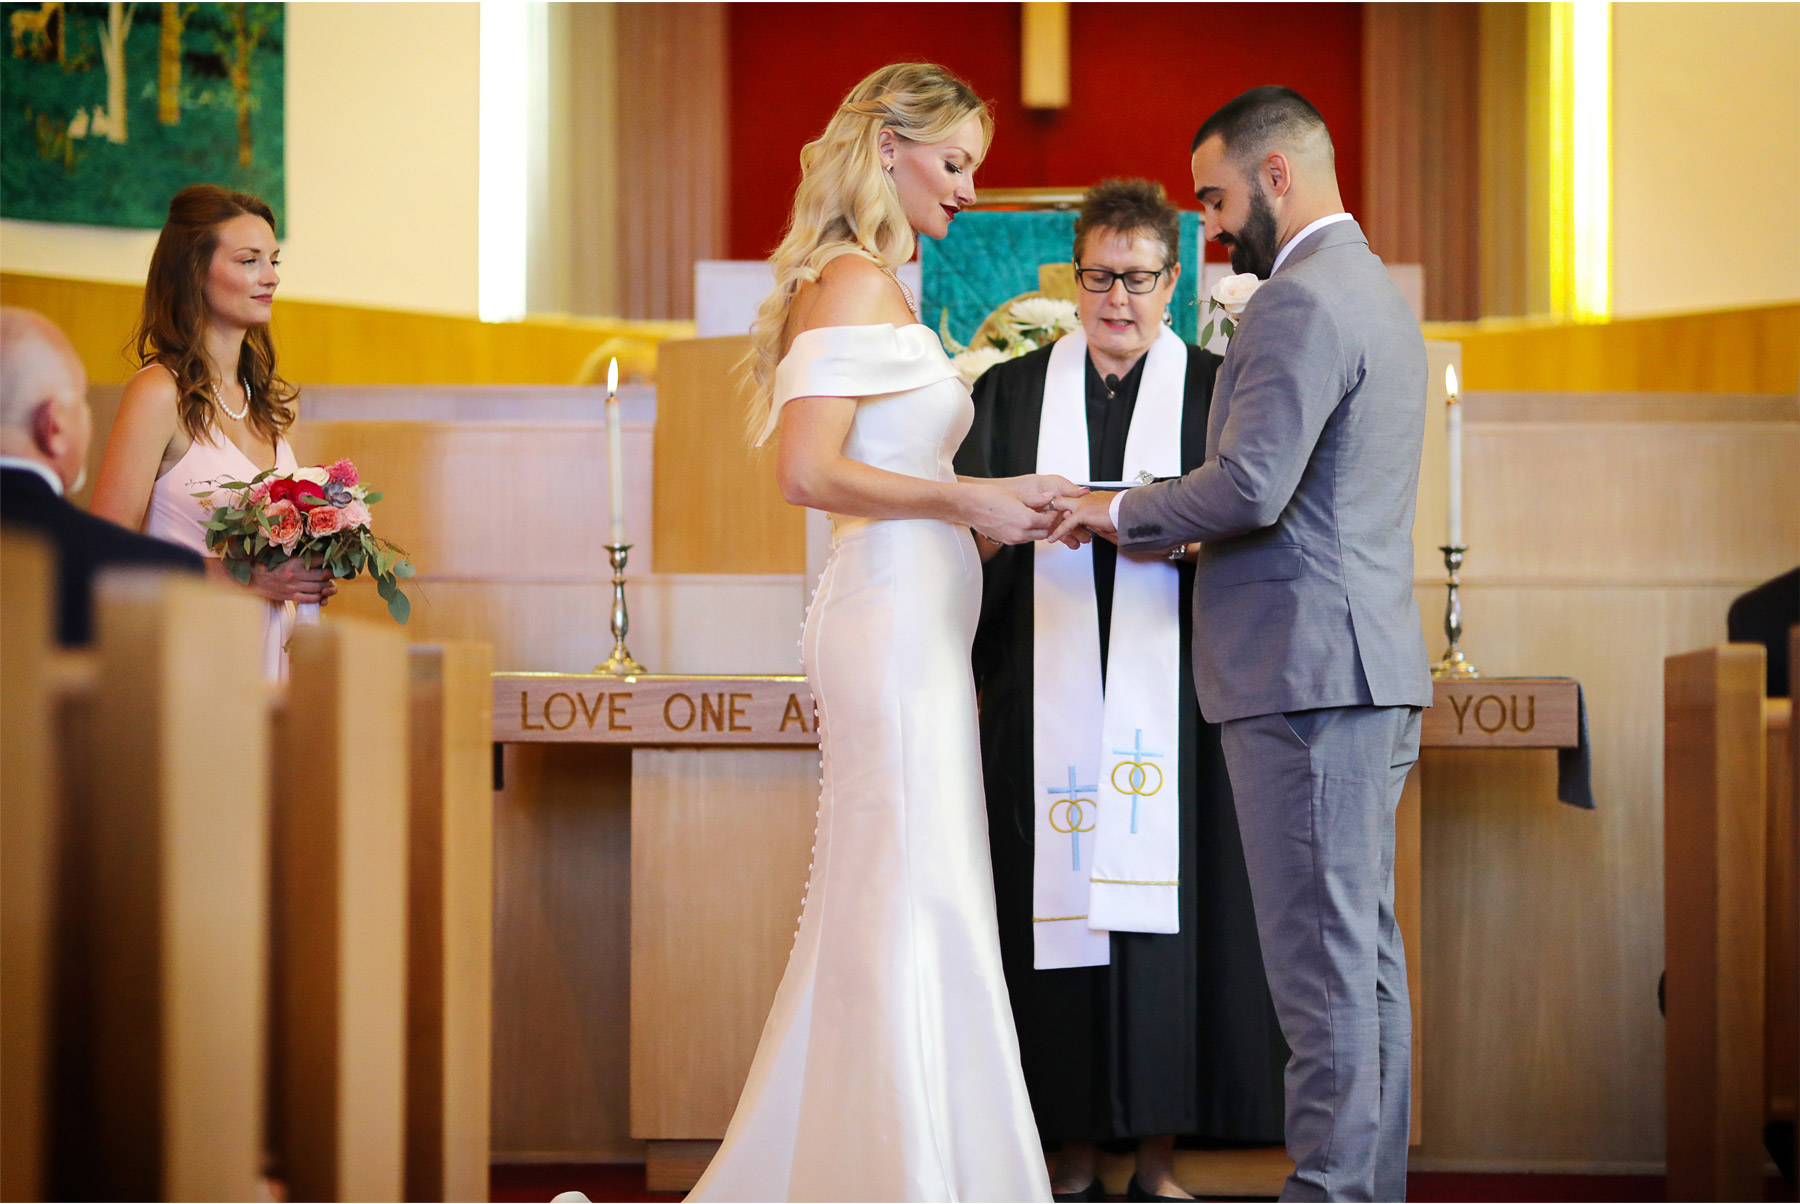 11-Ely-Minnesota-North-Wedding-by-Andrew-Vick-Photography-Bride-Groom-Ceremony-Vows-Katie-and-Joe.jpg